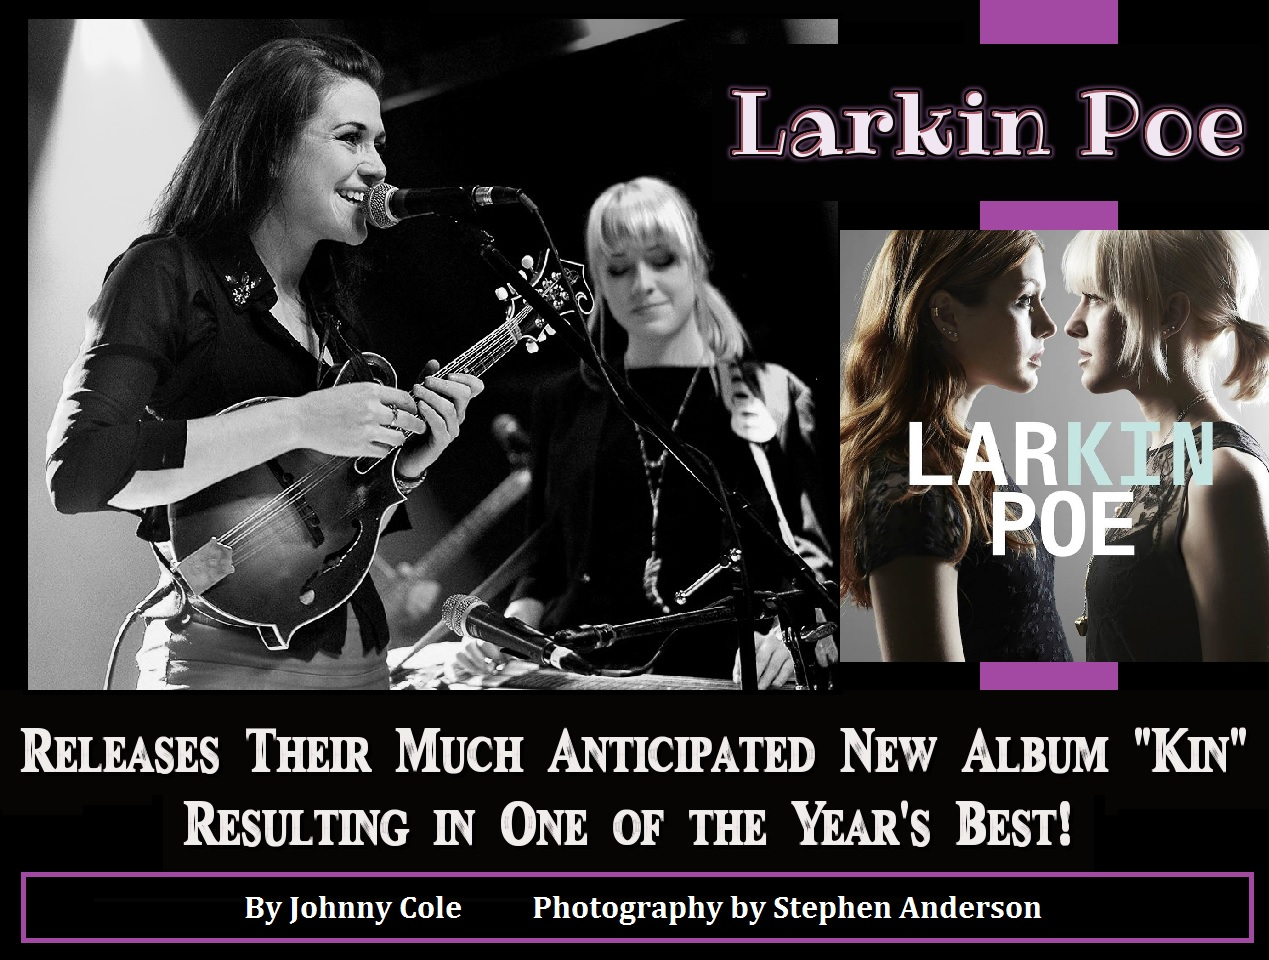 Larkin Poe Releases Their Much Anticipated New Album 'Kin' - Resulting in One of the Year's Best